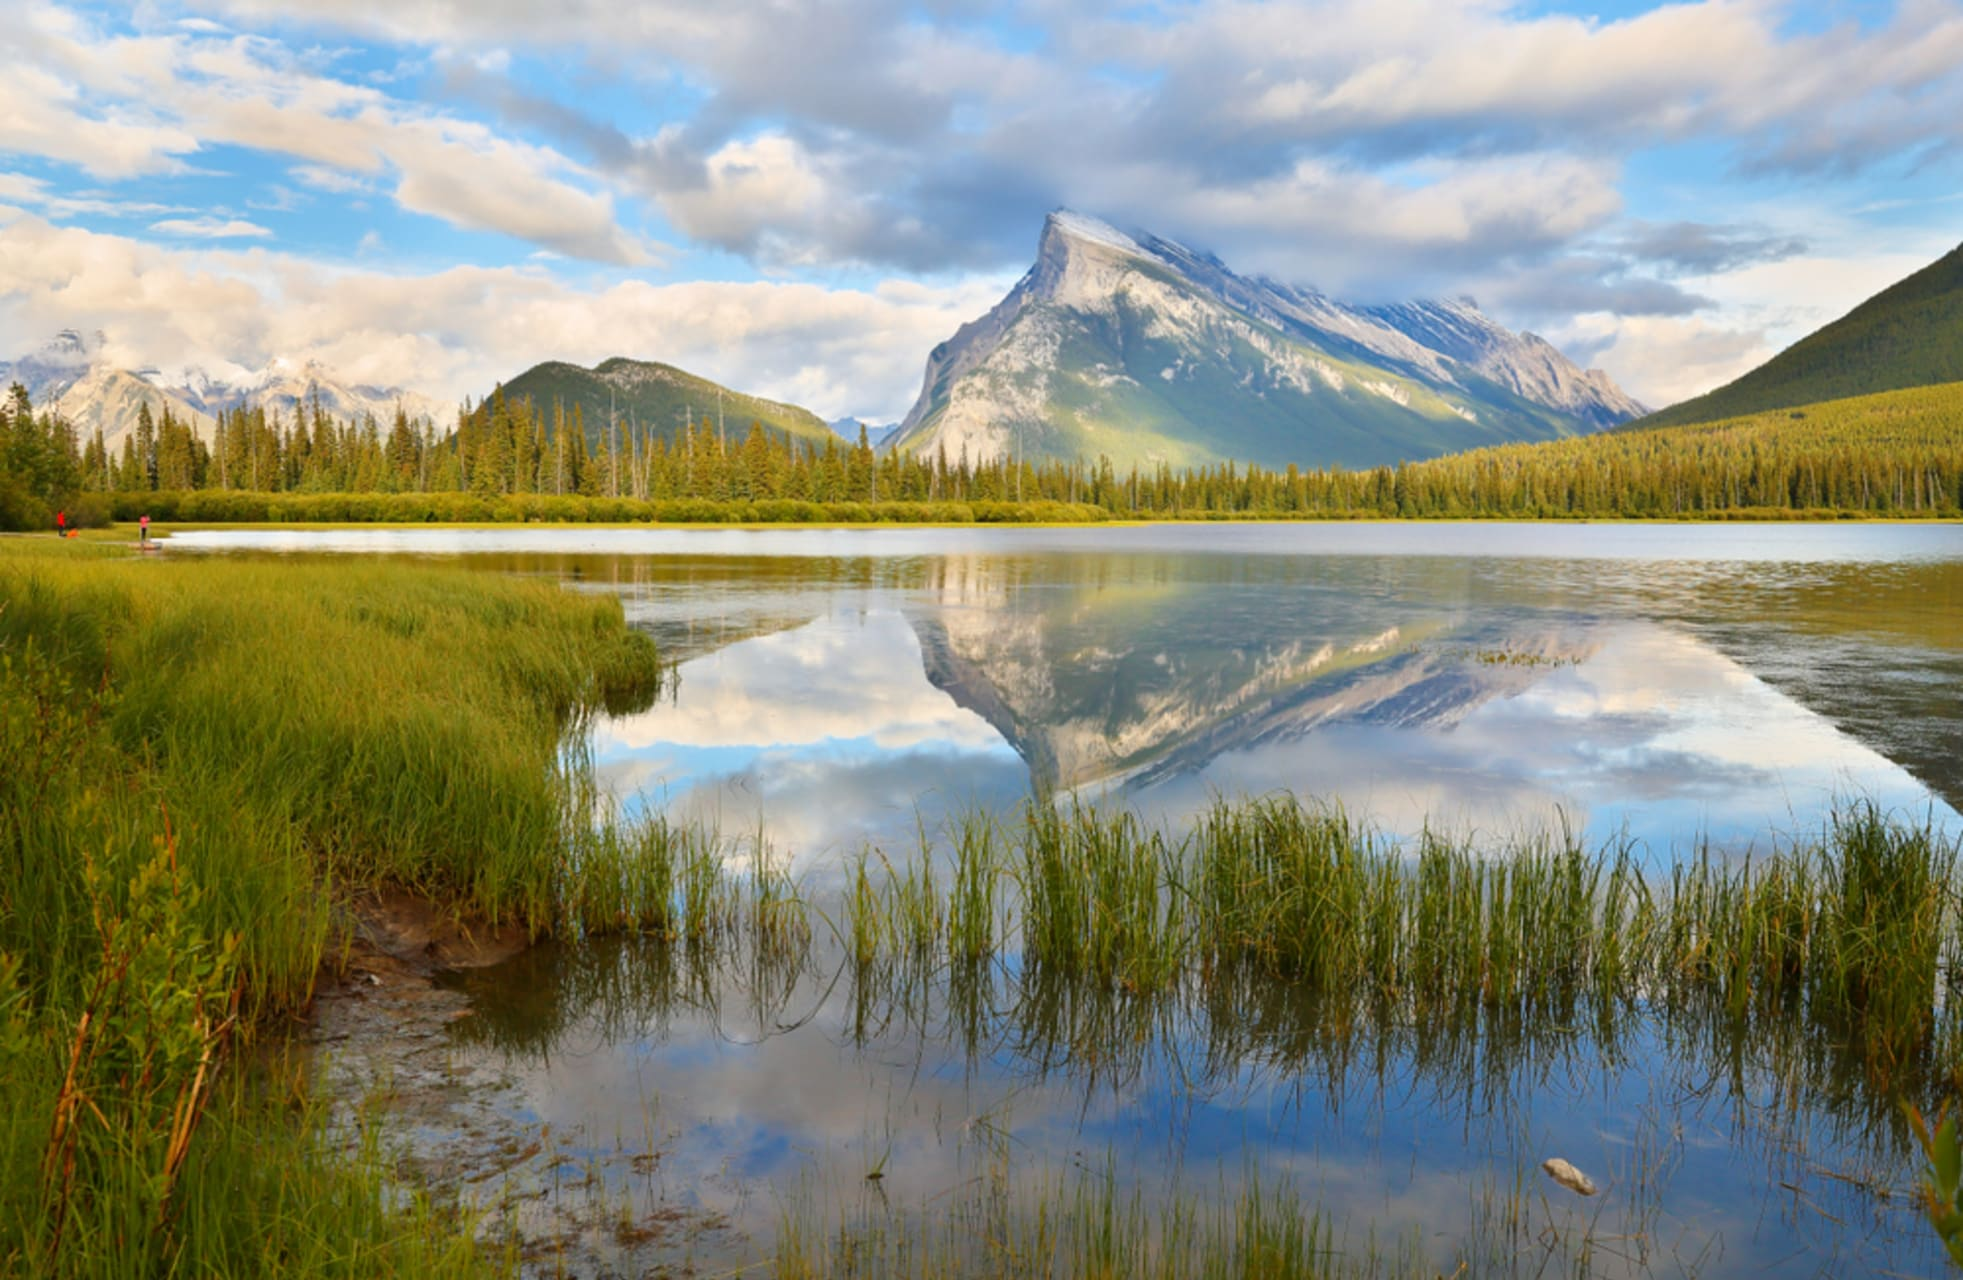 Banff - The spectacular views of Mount Rundle from Vermilion Lakes